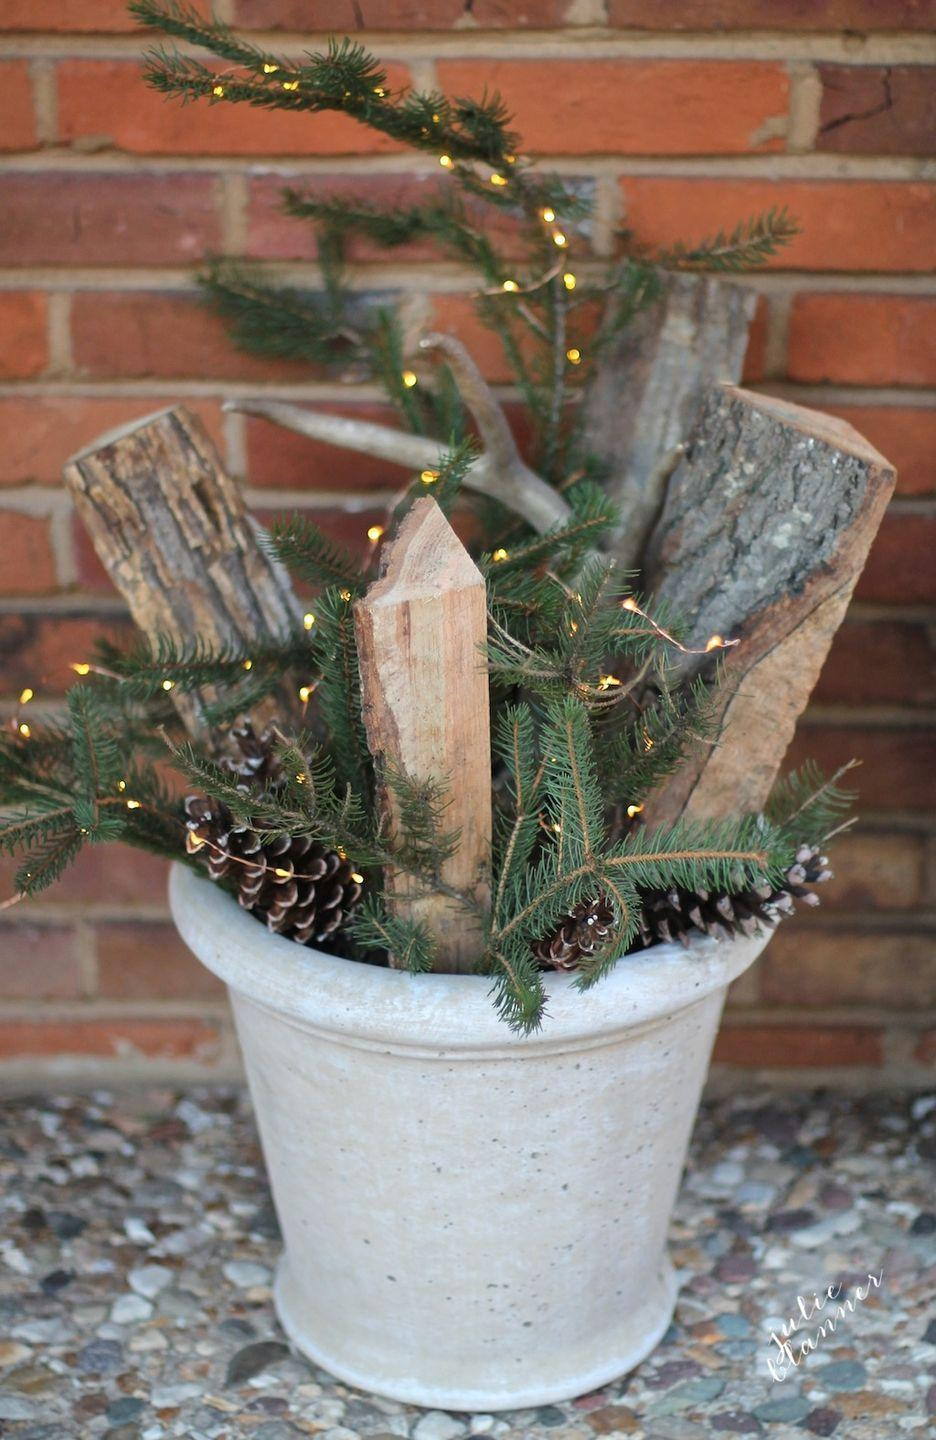 "<p>Turn a common winter scene—firewood, evergreen branches, and pinecones—into a dazzling display with some string lights.</p><p>See more at <a href=""http://julieblanner.com/fall-to-winter-decorations/"" rel=""nofollow noopener"" target=""_blank"" data-ylk=""slk:Julie Blanner"" class=""link rapid-noclick-resp"">Julie Blanner</a>. </p>"